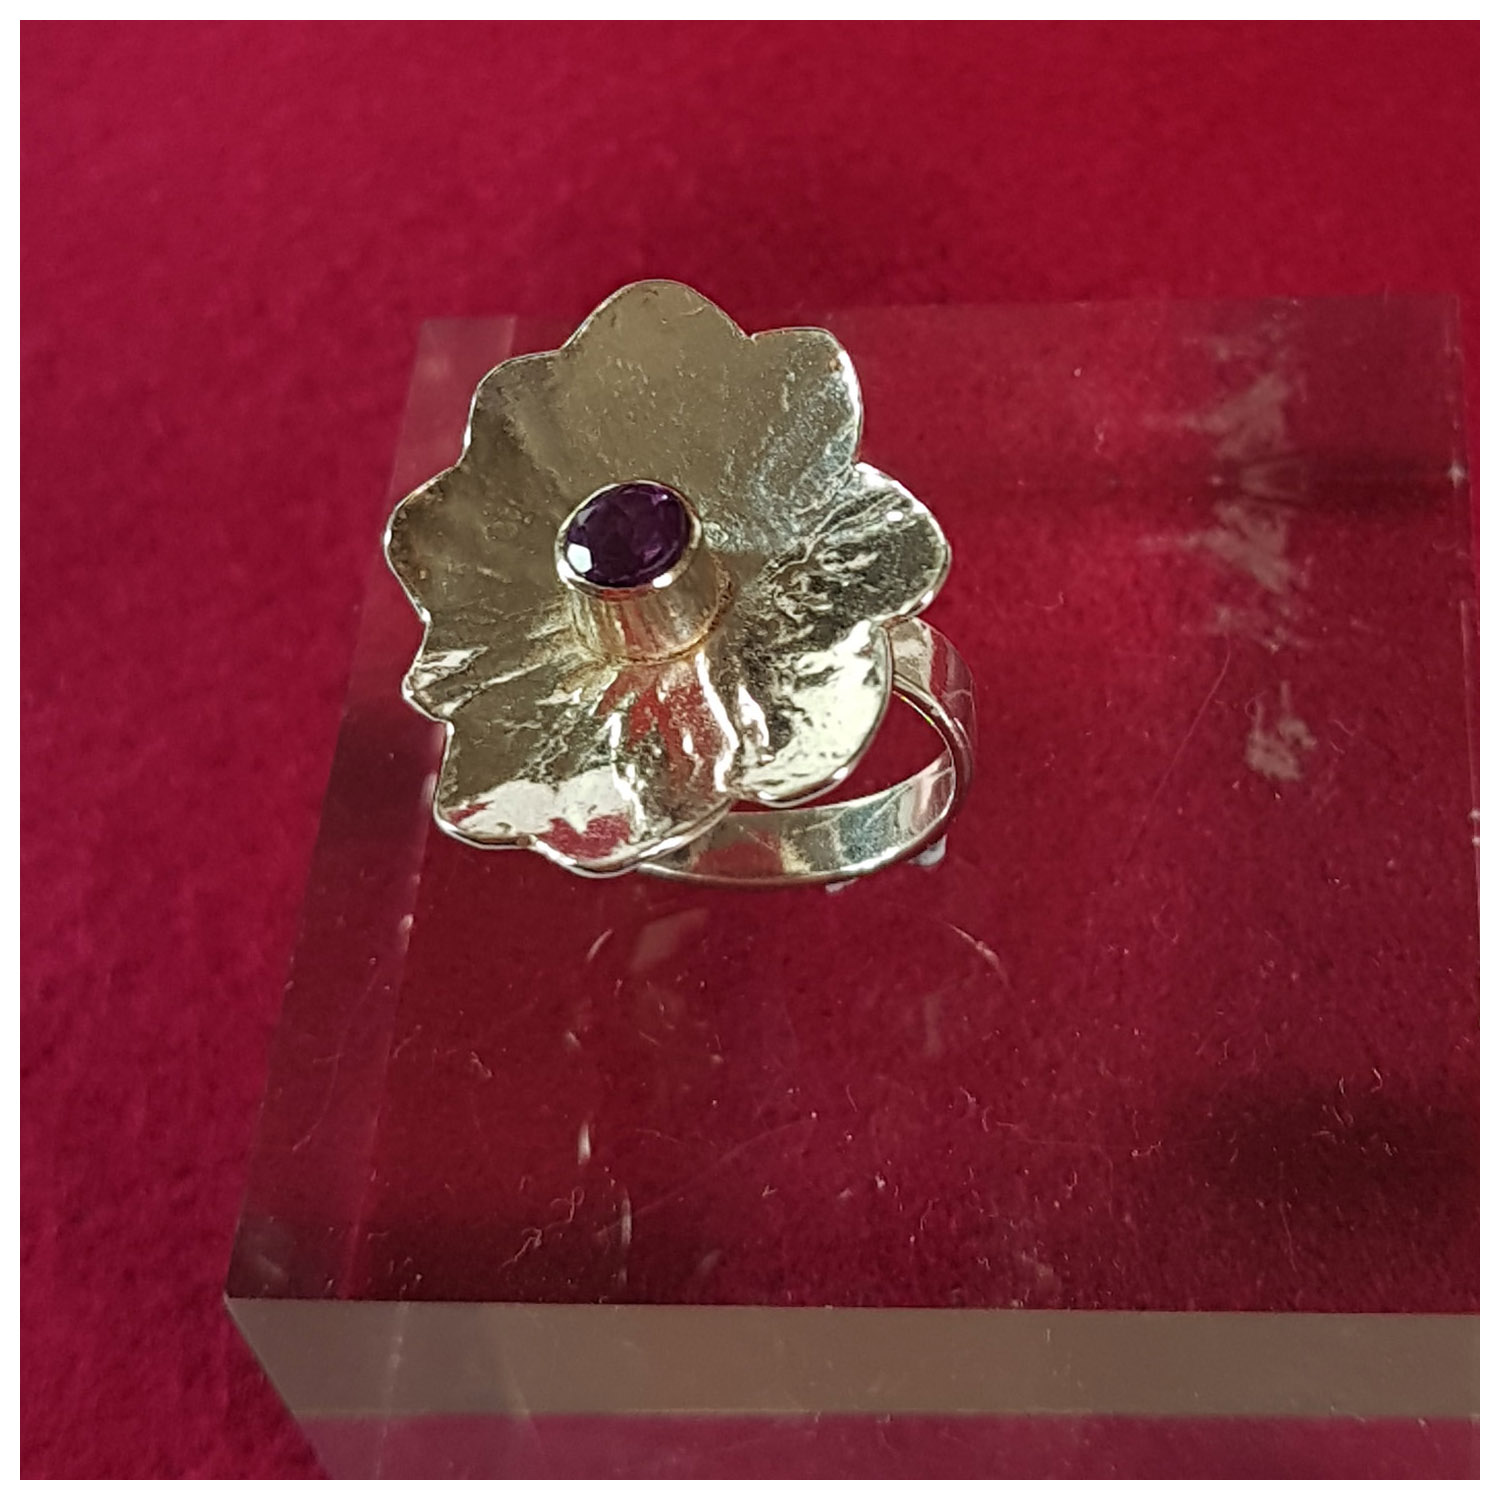 Rashmi Murray, Ring, Sterling Silver with Amethyst, Size M, 28x20mm, £90